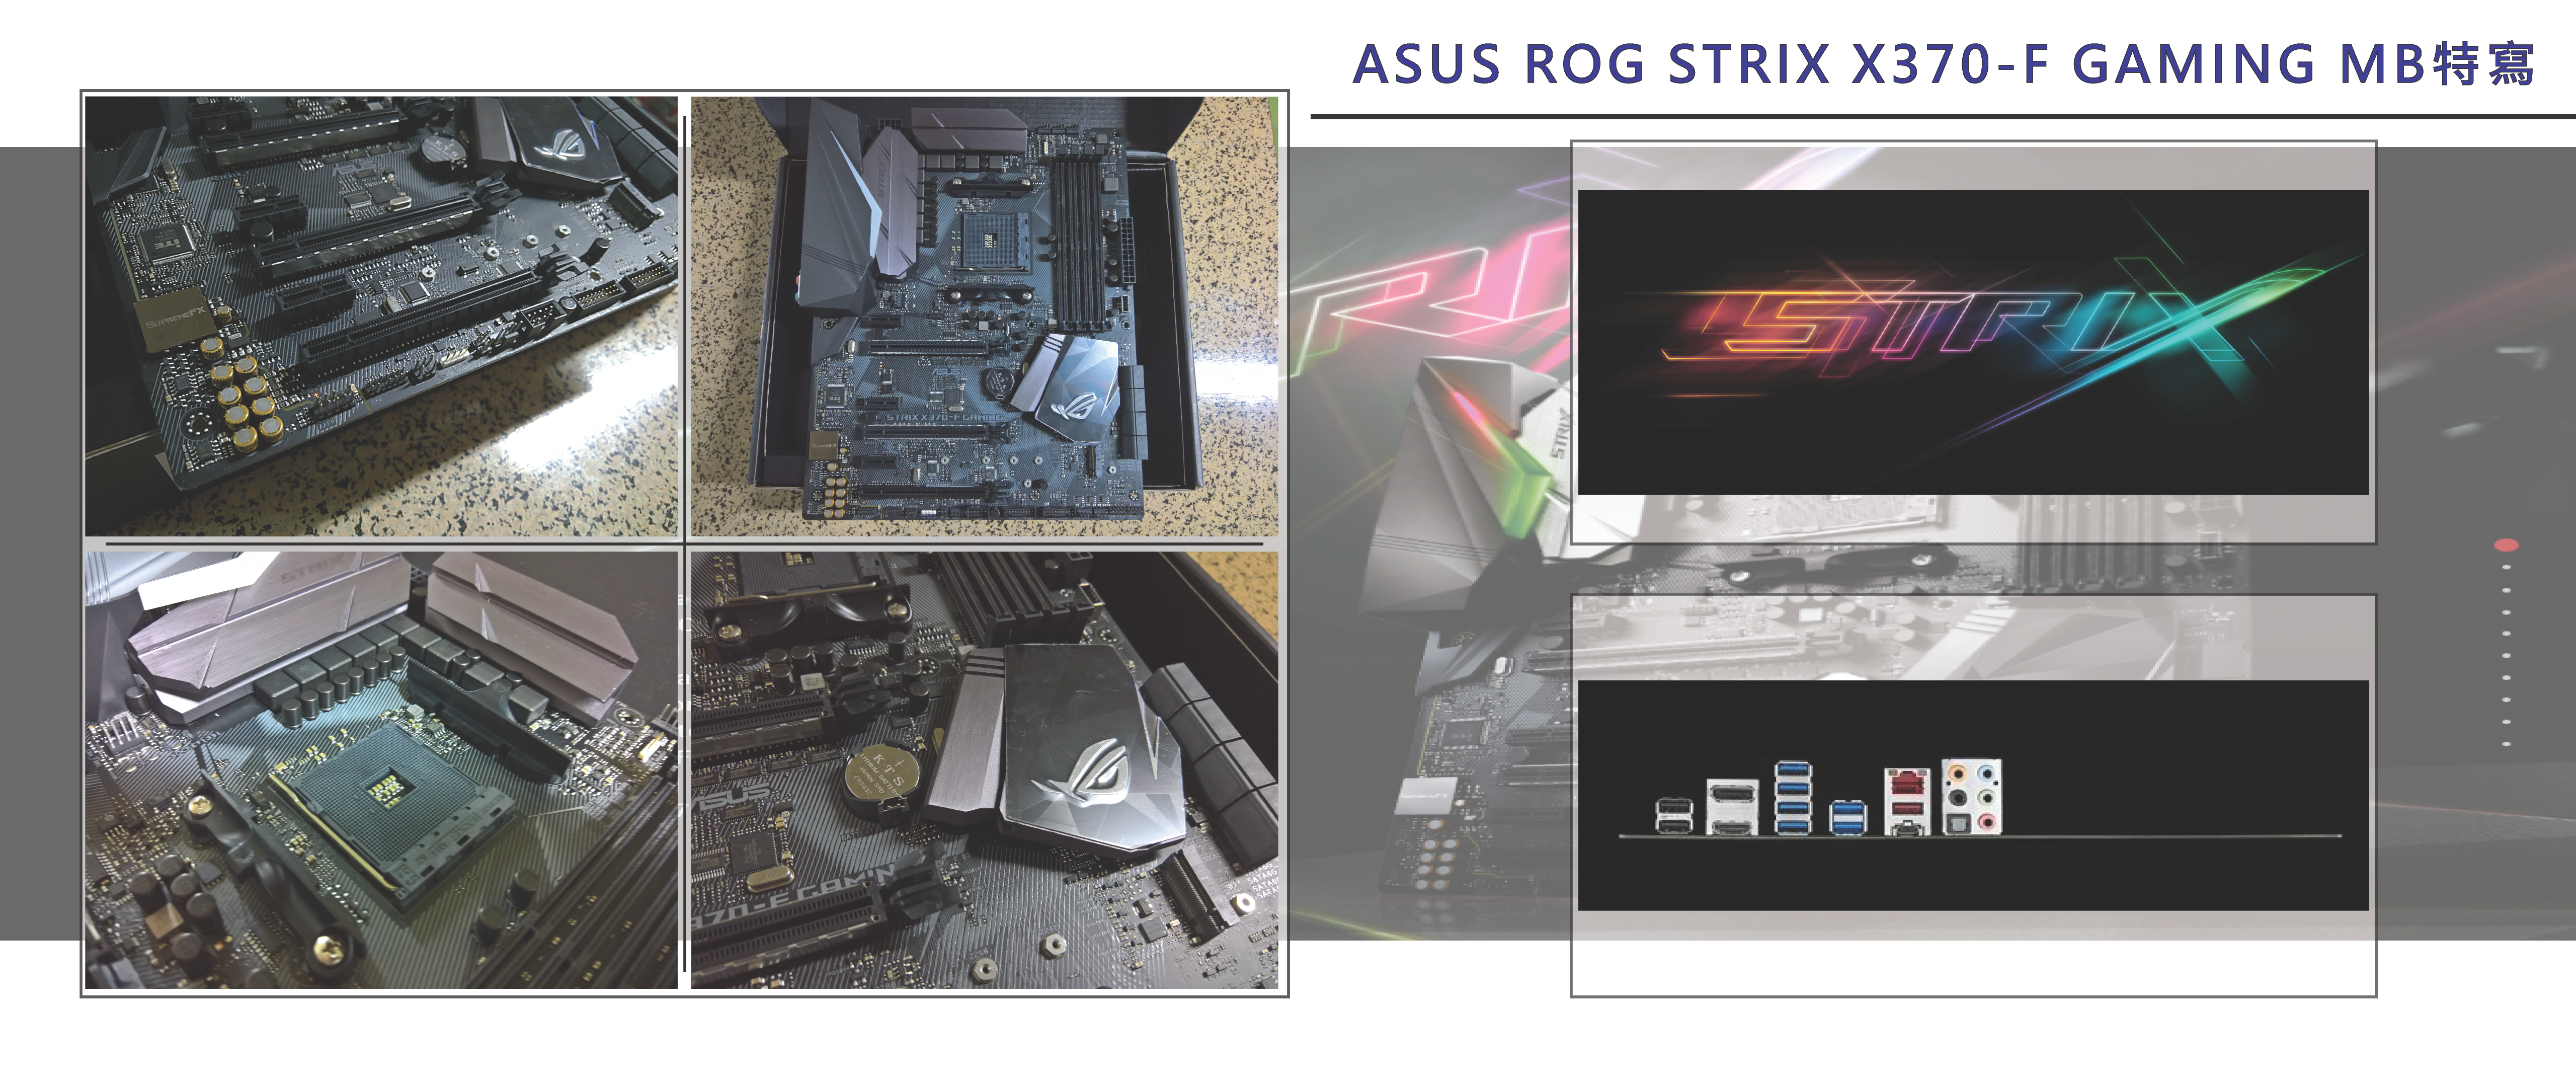 AMD RYZEN 5 1600 & ASUS ROG STRIX X370-F GAMING & AMD RADEON R9 NANOx2 CROSSFIREX TEST - XFastest - ASUS ROG STRIX X370-F GAMING MB特寫